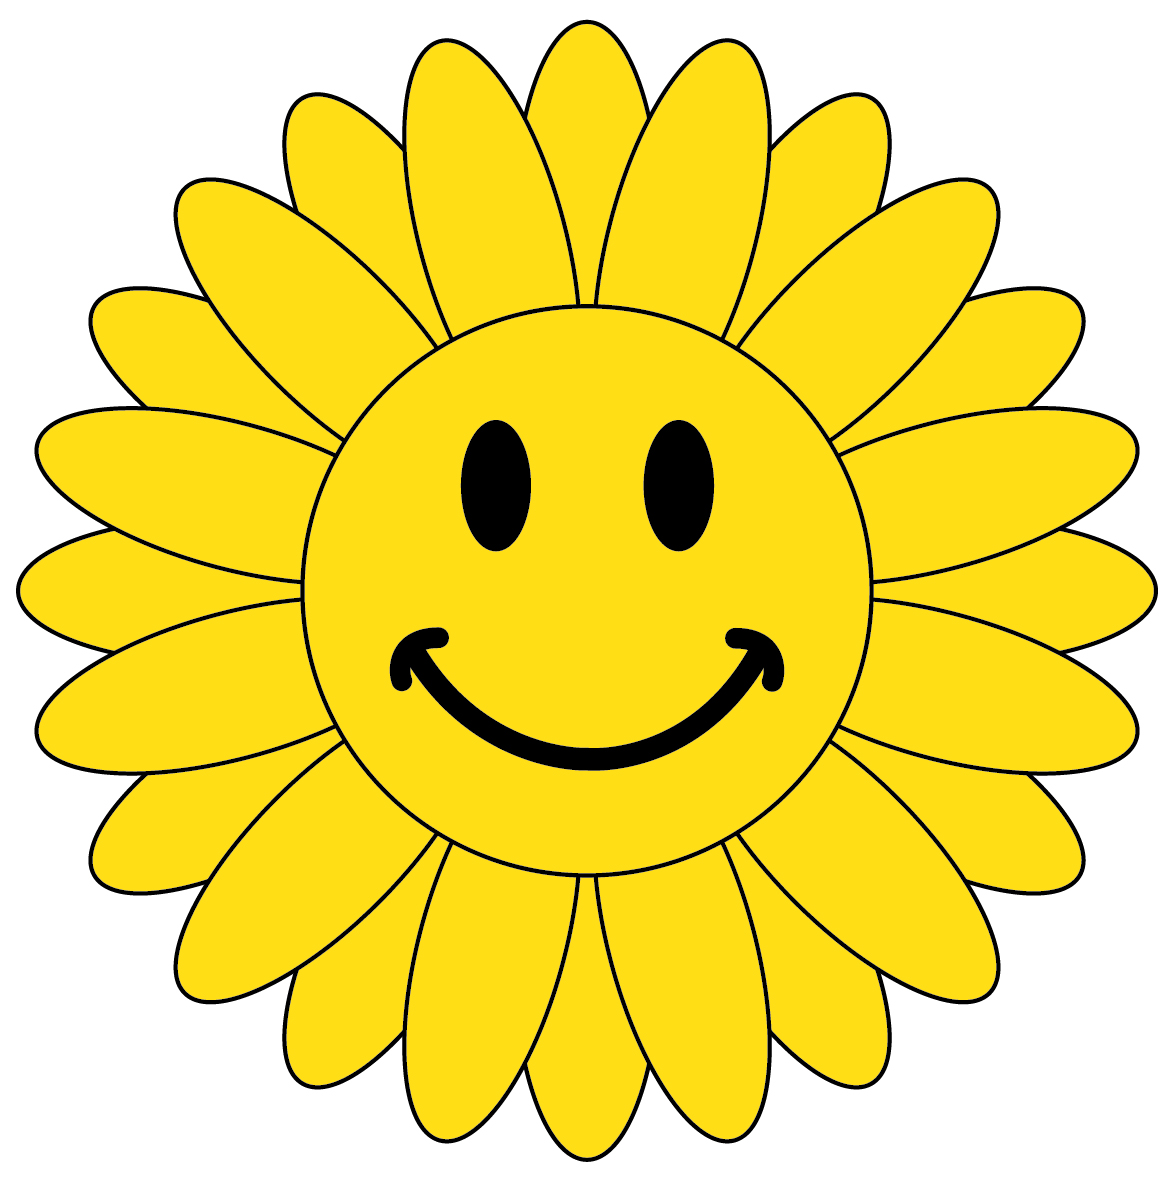 Smiley Face Flower 23604